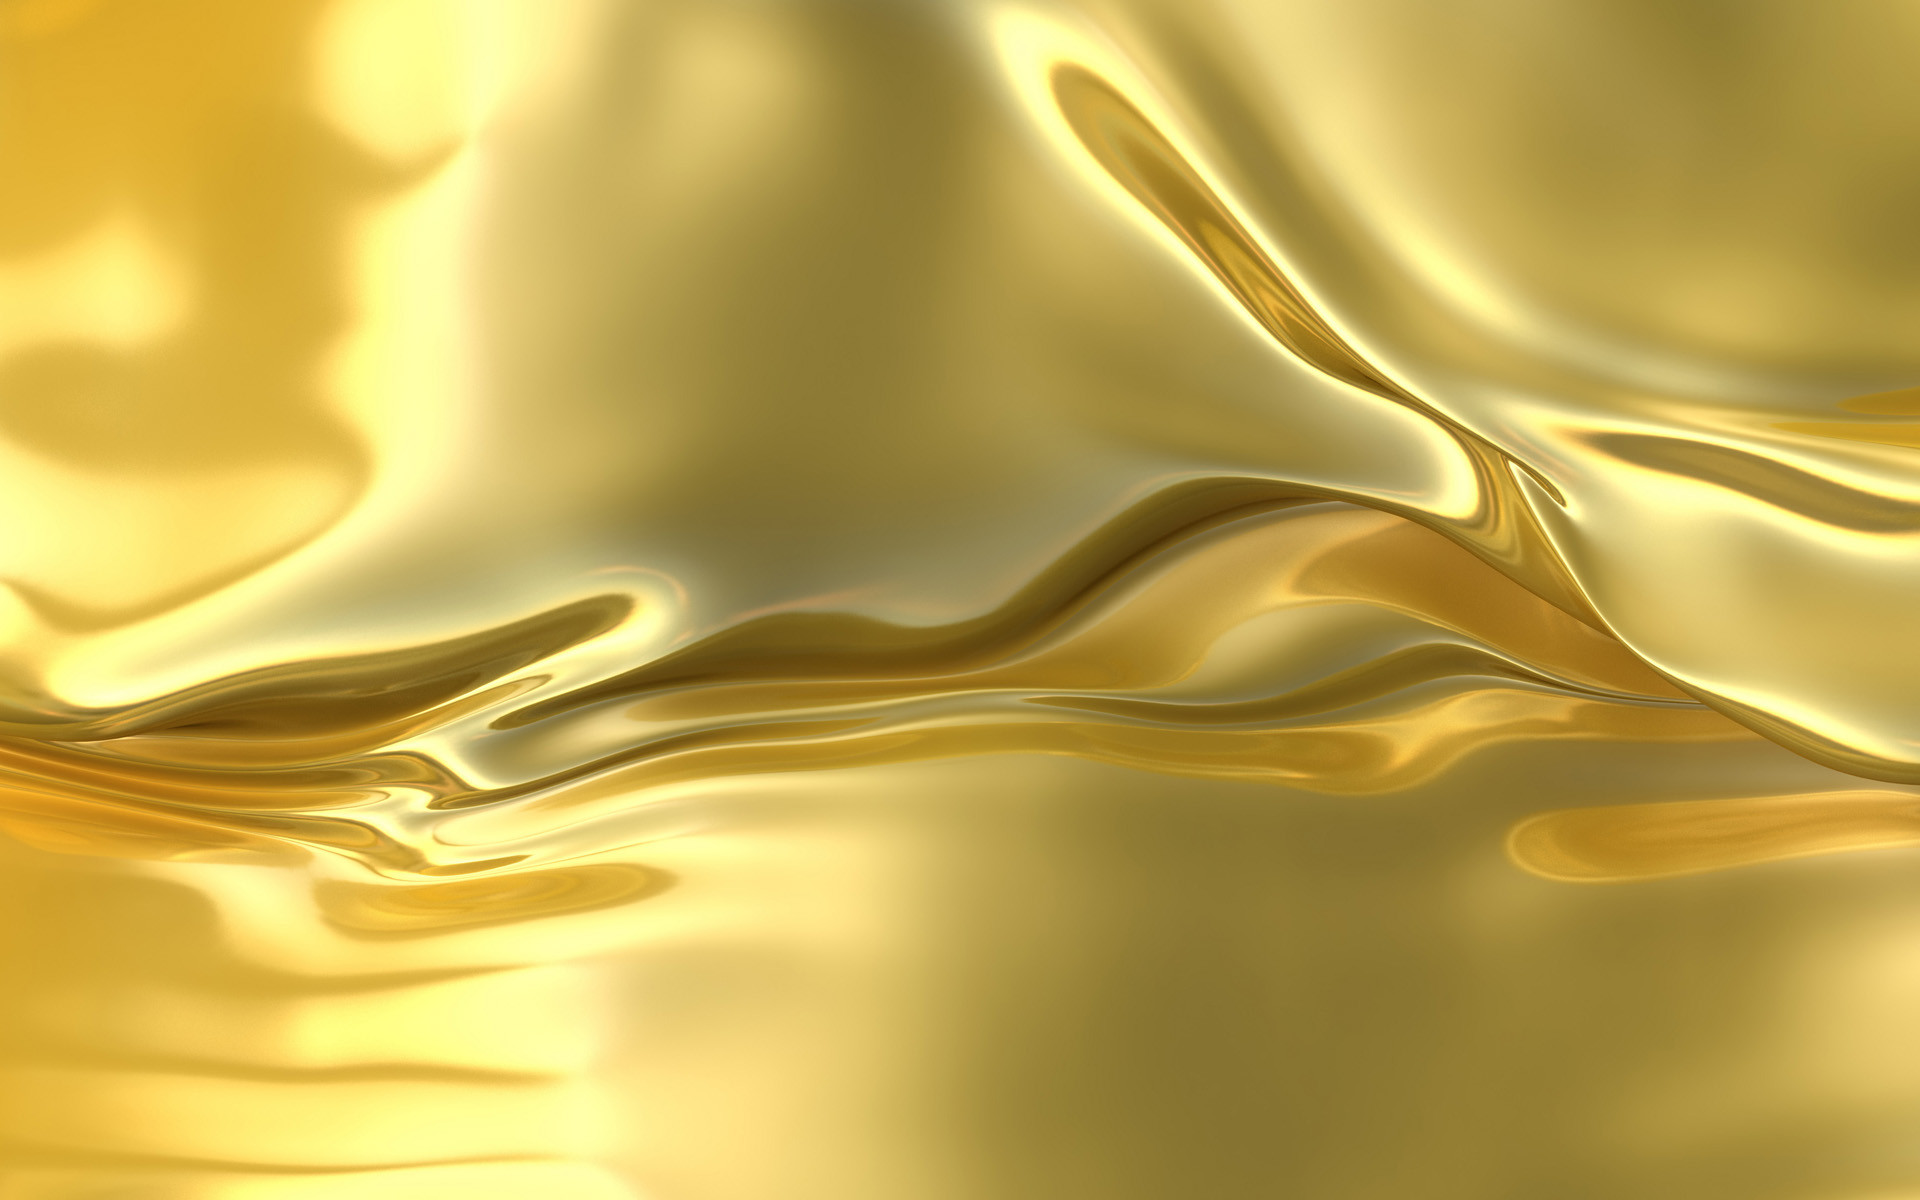 1920x1200 Explore Gold Background Wallpaper And More